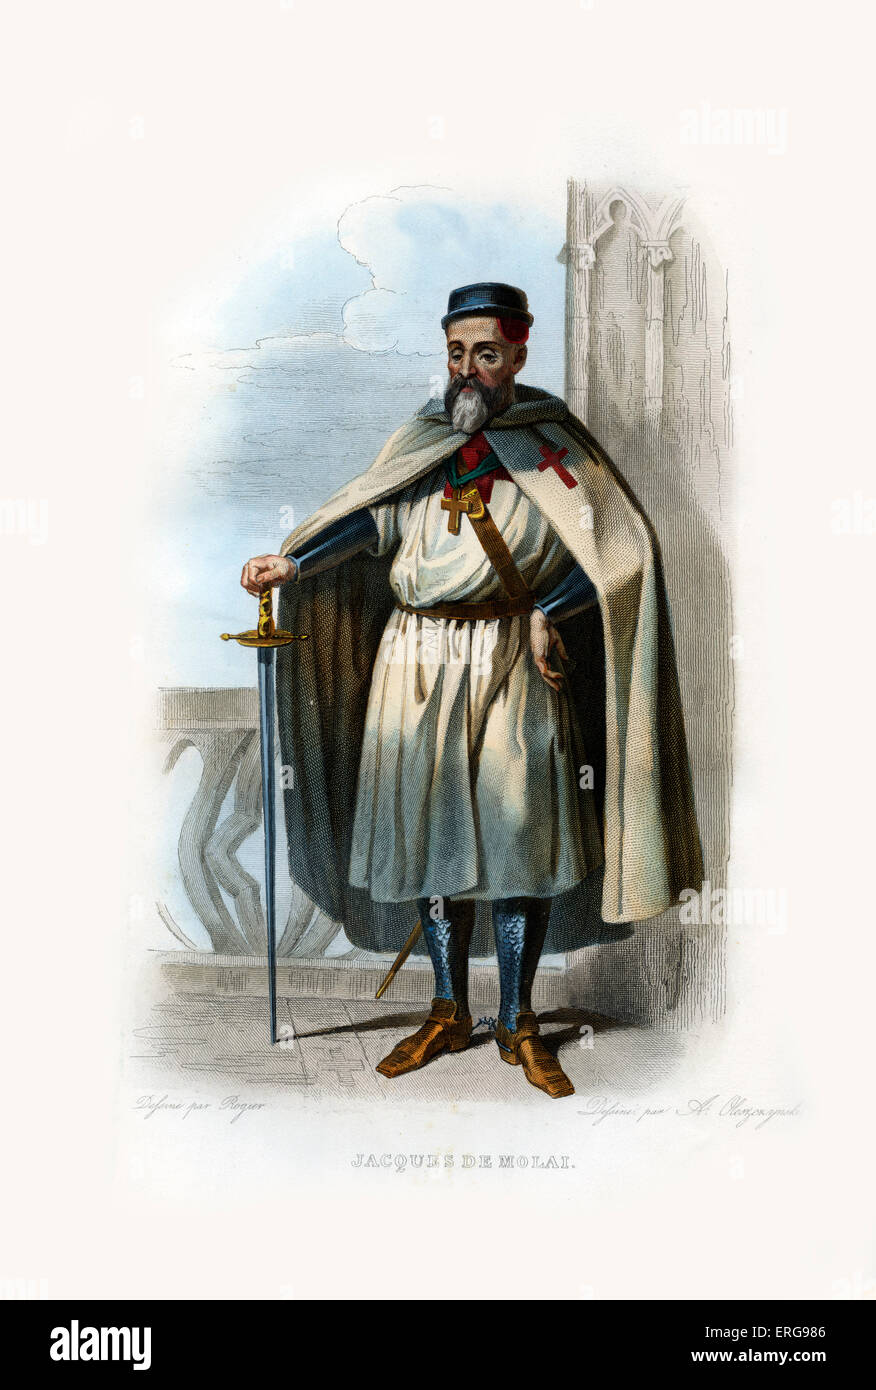 Jacques de Molai. Grand Master of the Knights Templar (one of Western Christian military orders in Medieval Europe). - Stock Image